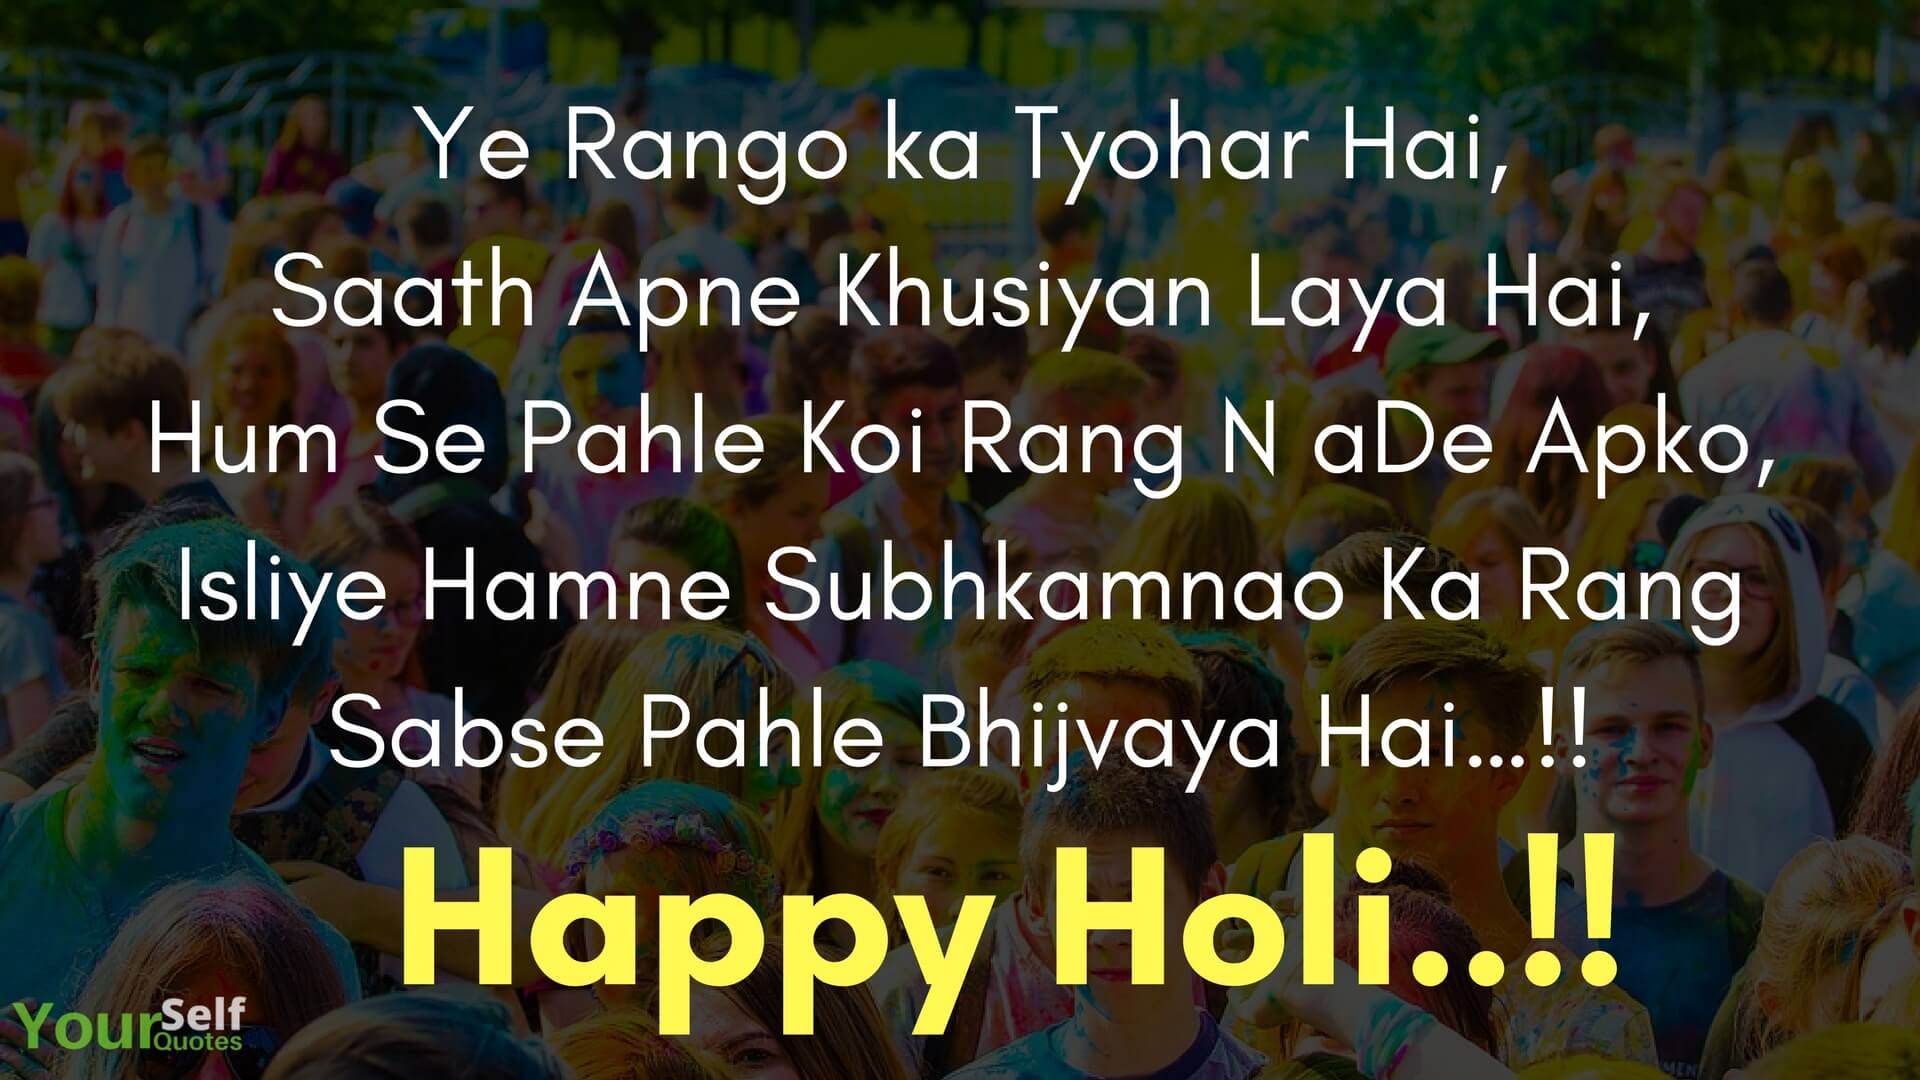 Happy Holi Festival Wishes, Pictures, Quotes, Massages ...